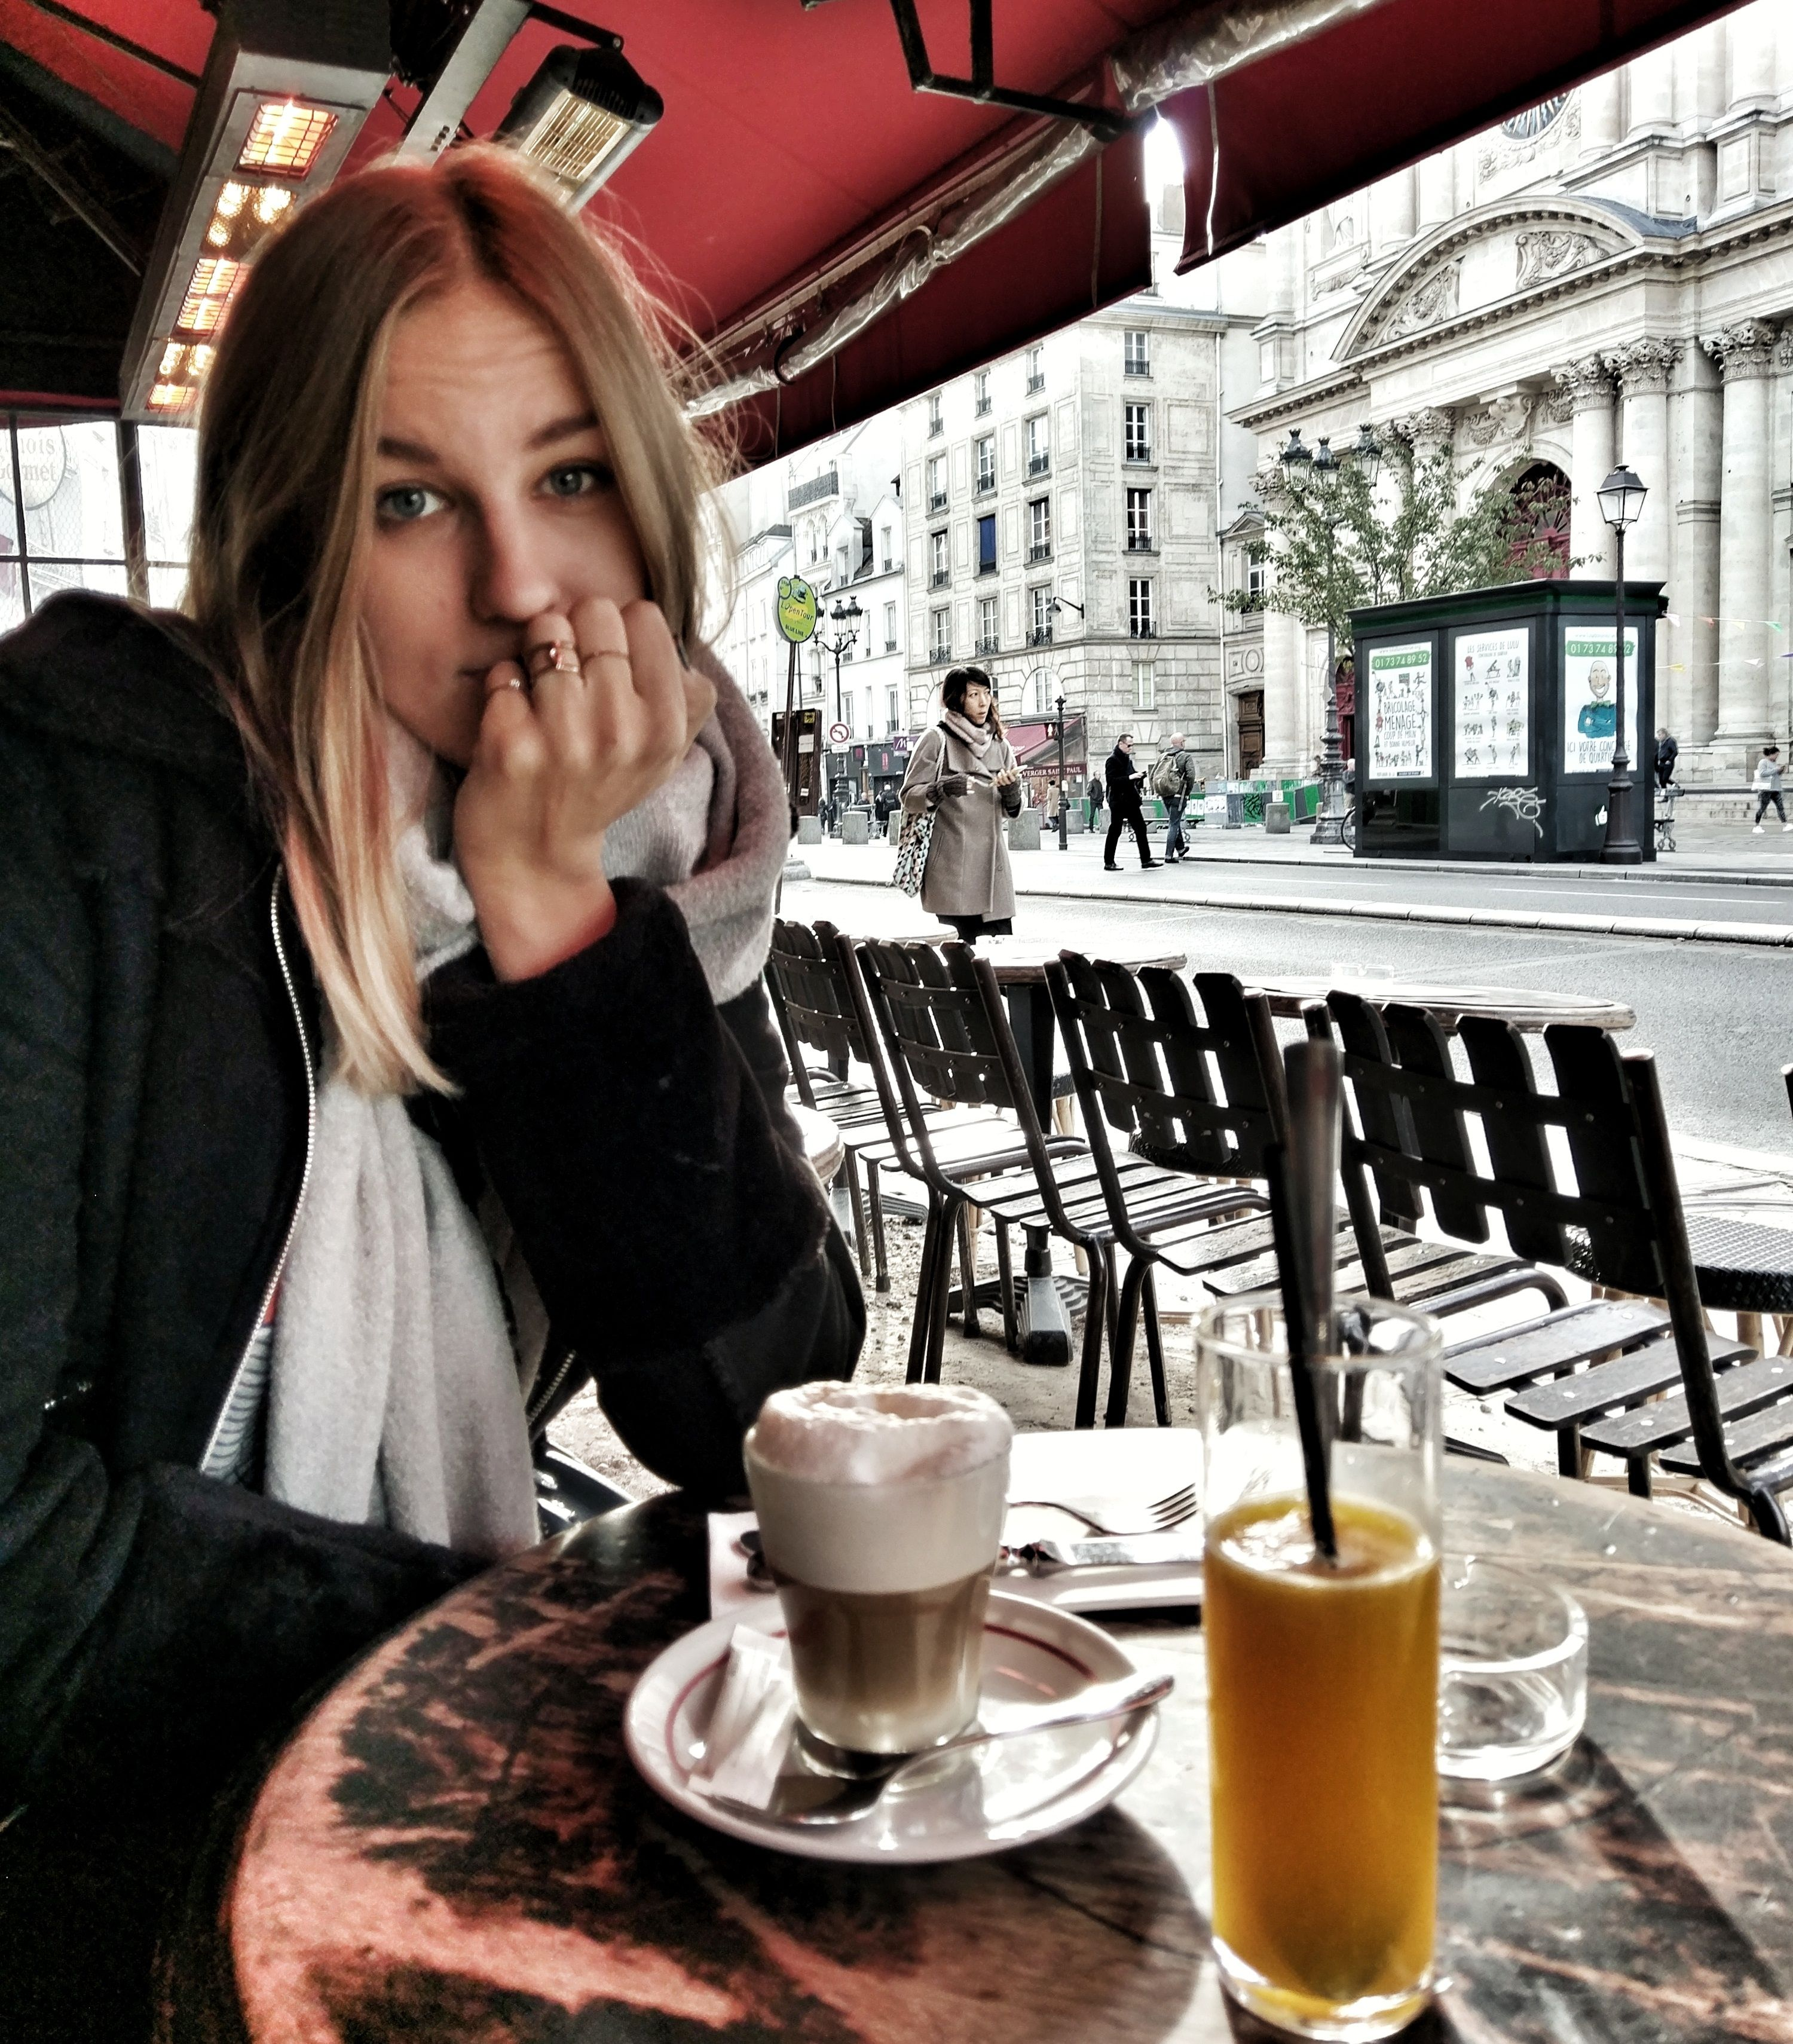 Do You Wanna Have Breakfast With Me Enjoying All The Little Coffee Places In Le Marais Paris Stole My Heart And Of Cours Coffee Places Little S Coffee Paris